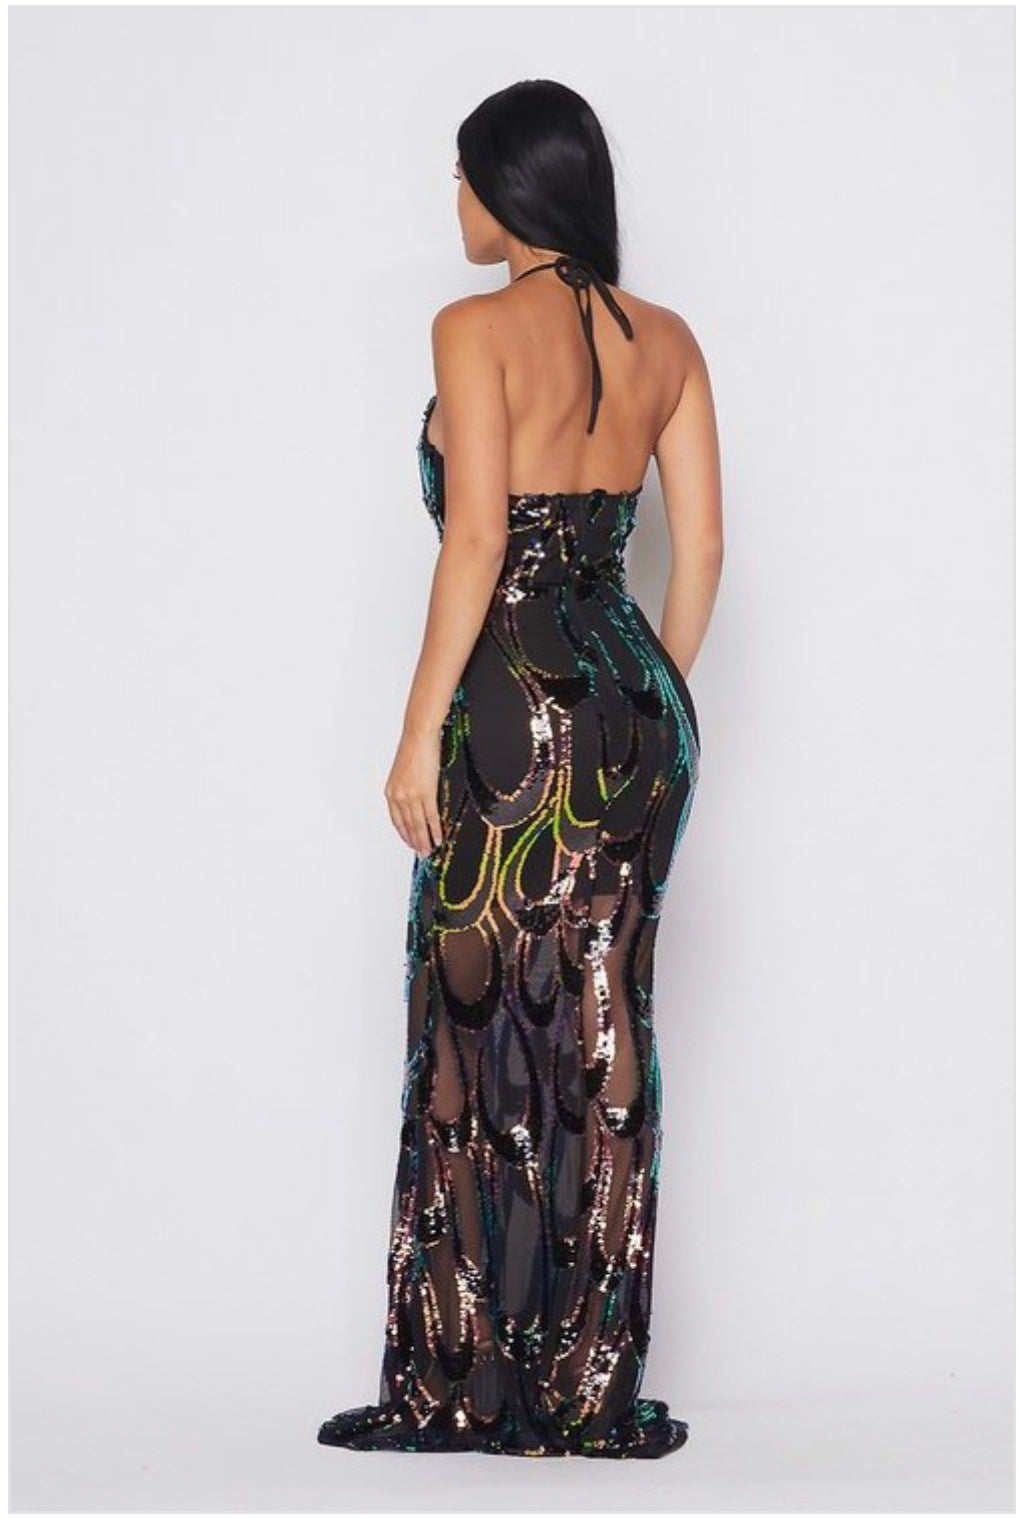 Mermaid Dreams Halter Dress